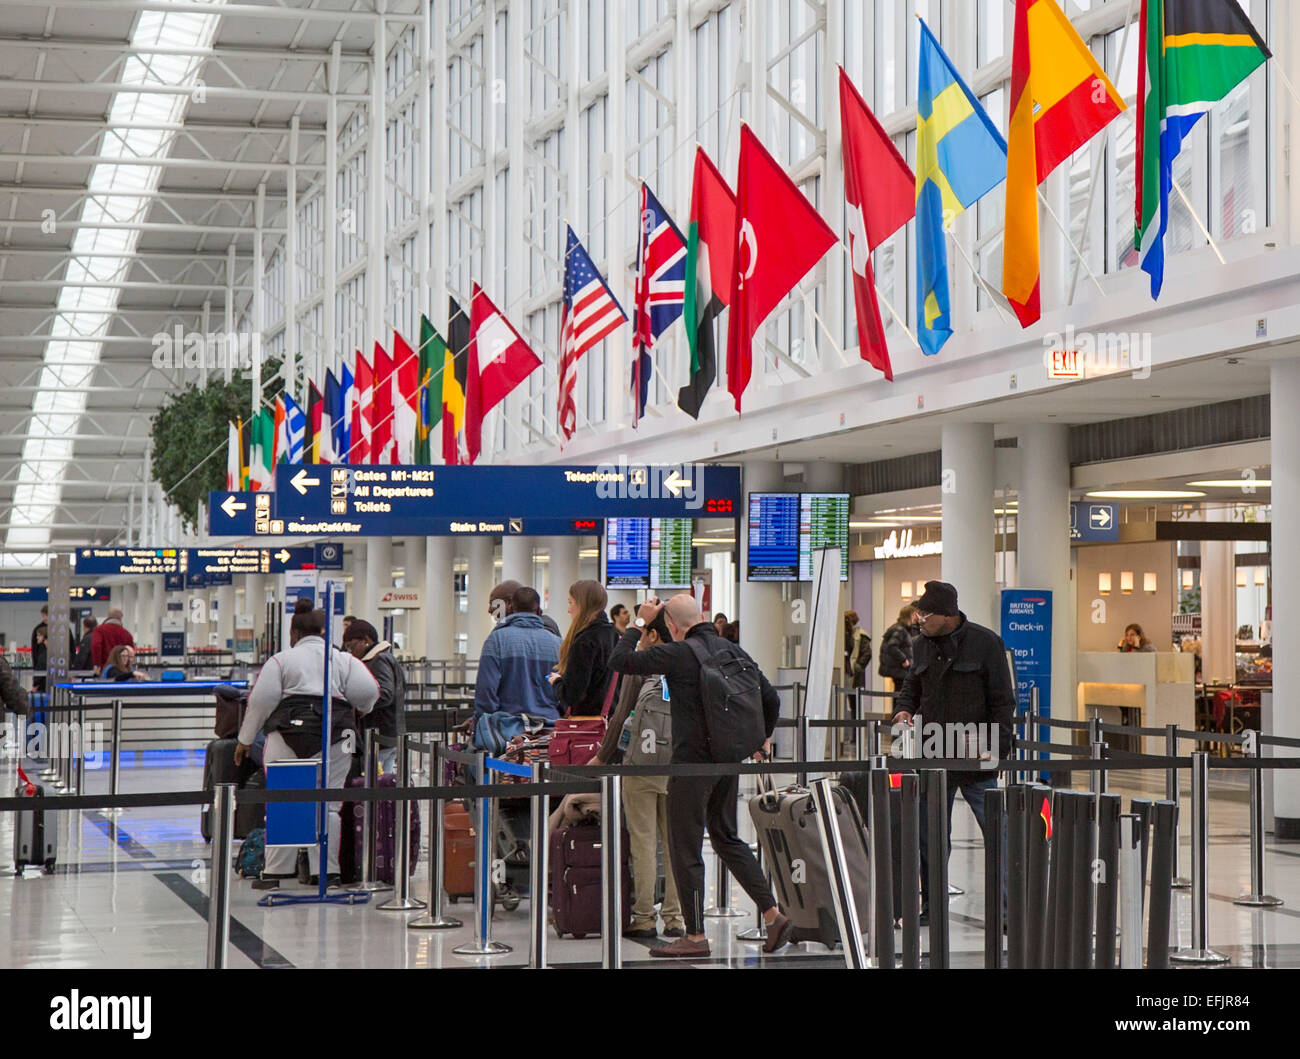 Chicago, Illinois - Passengers waiting in line to check in for flights at O'Hare International Airport's - Stock Image